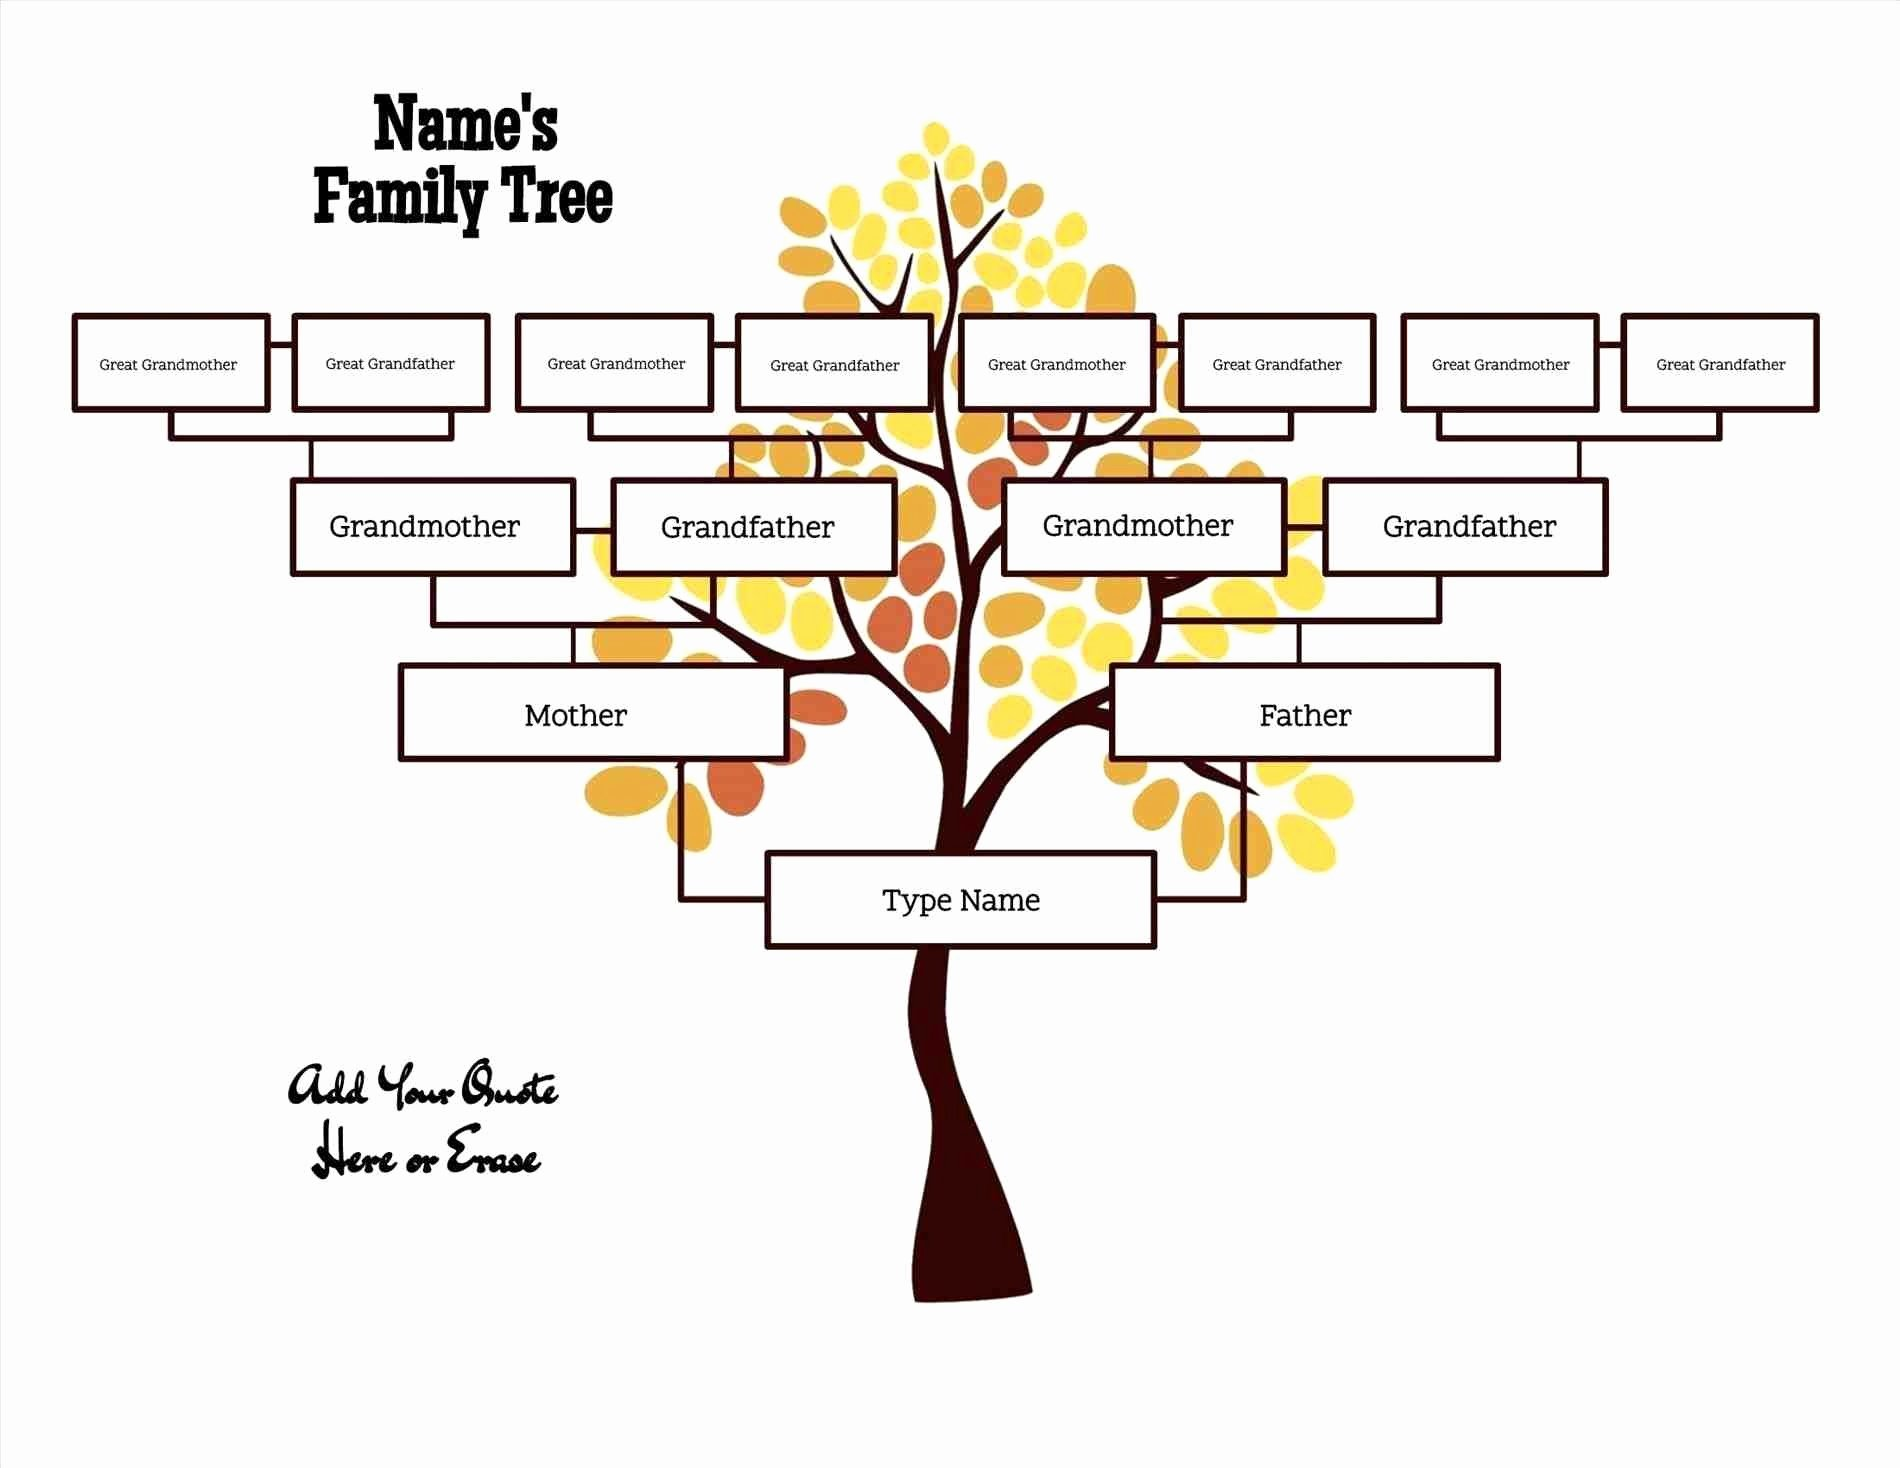 Editable Family Tree Template Lovely Free Editable Family Tree Template Daily Roabox